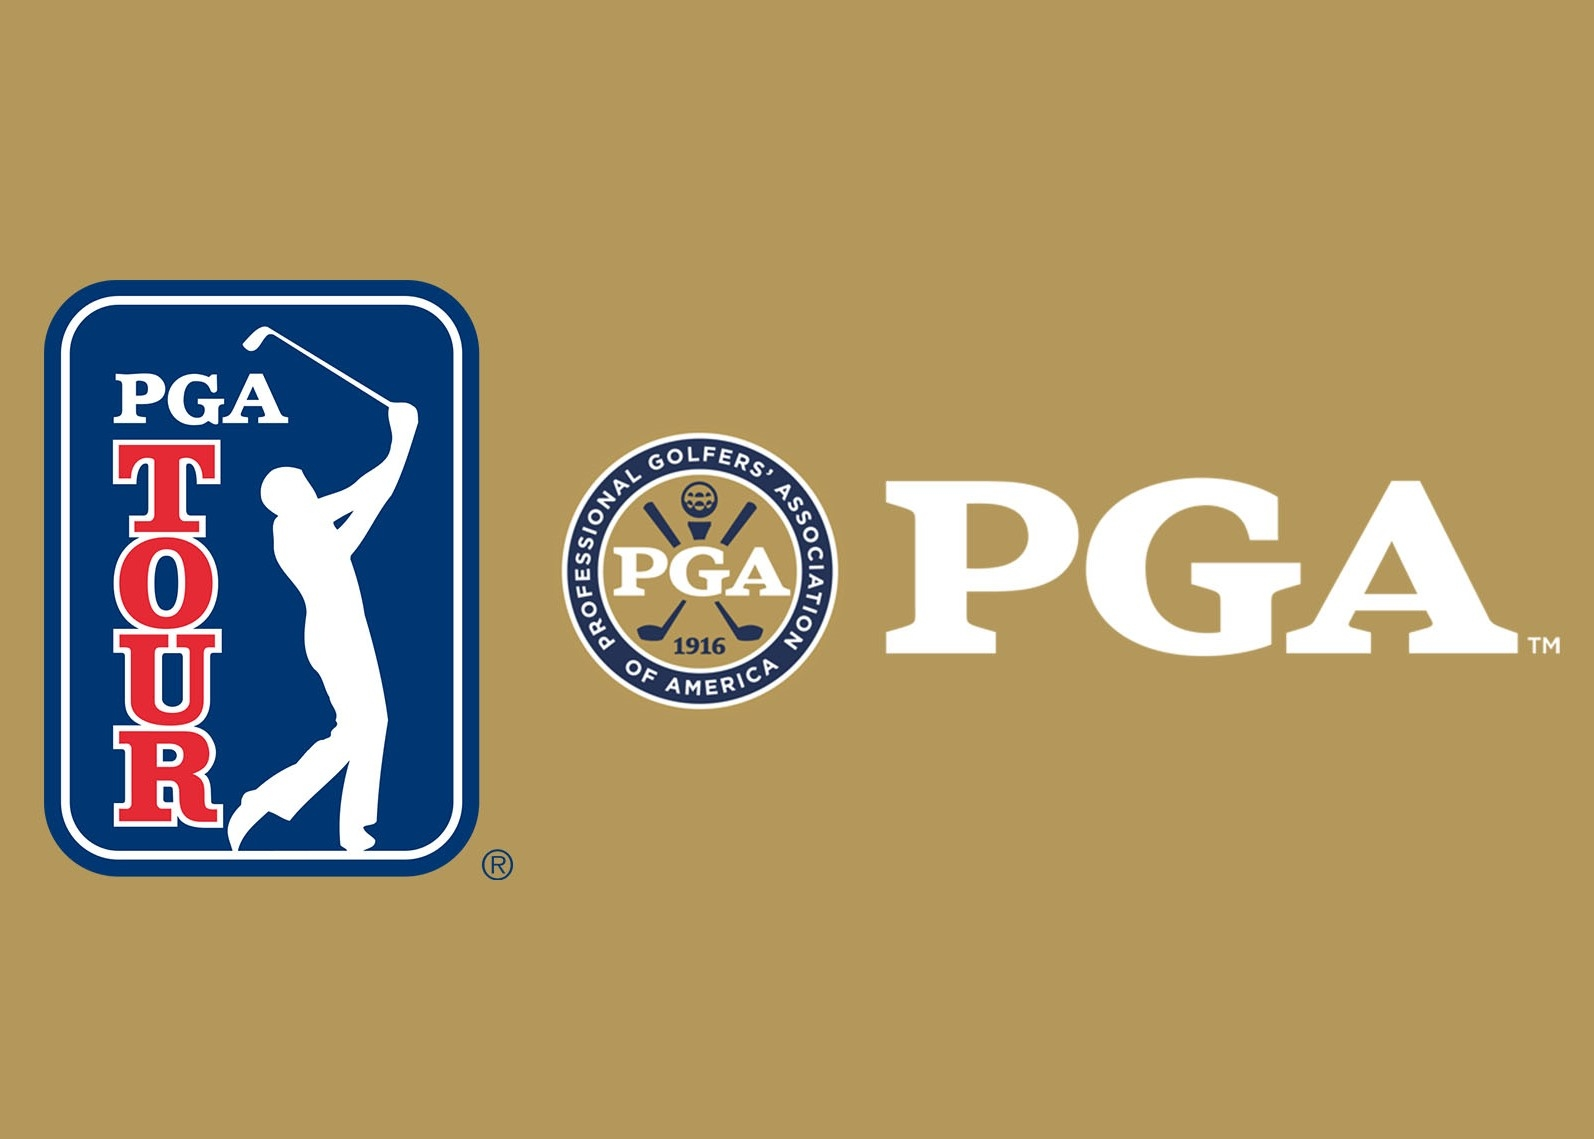 PGA of America and PGA TOUR Announce Schedule Changes for 2019 and Beyond